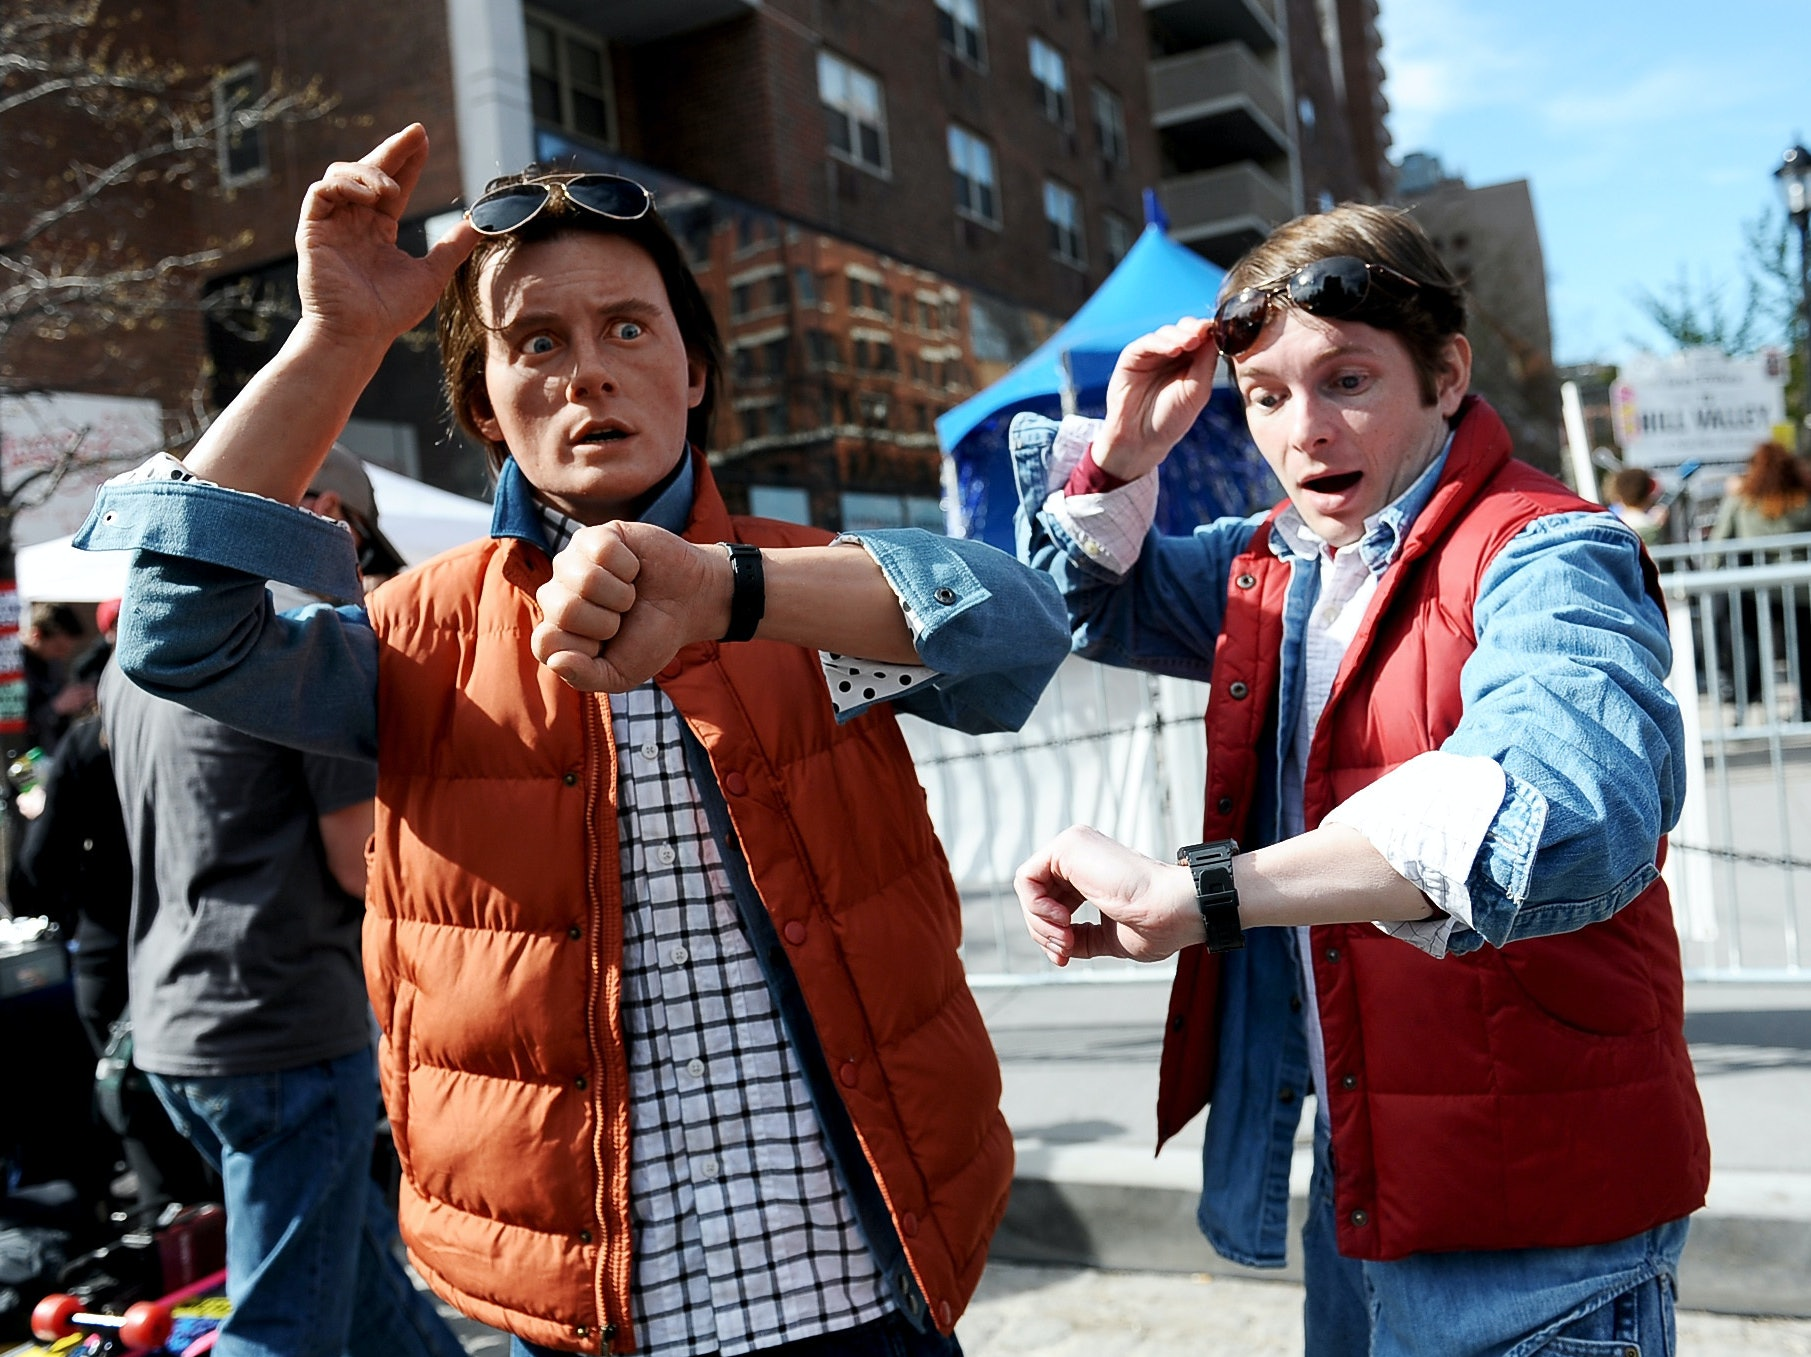 How to Dress as Marty McFly From 'Back to the Future' for Halloween